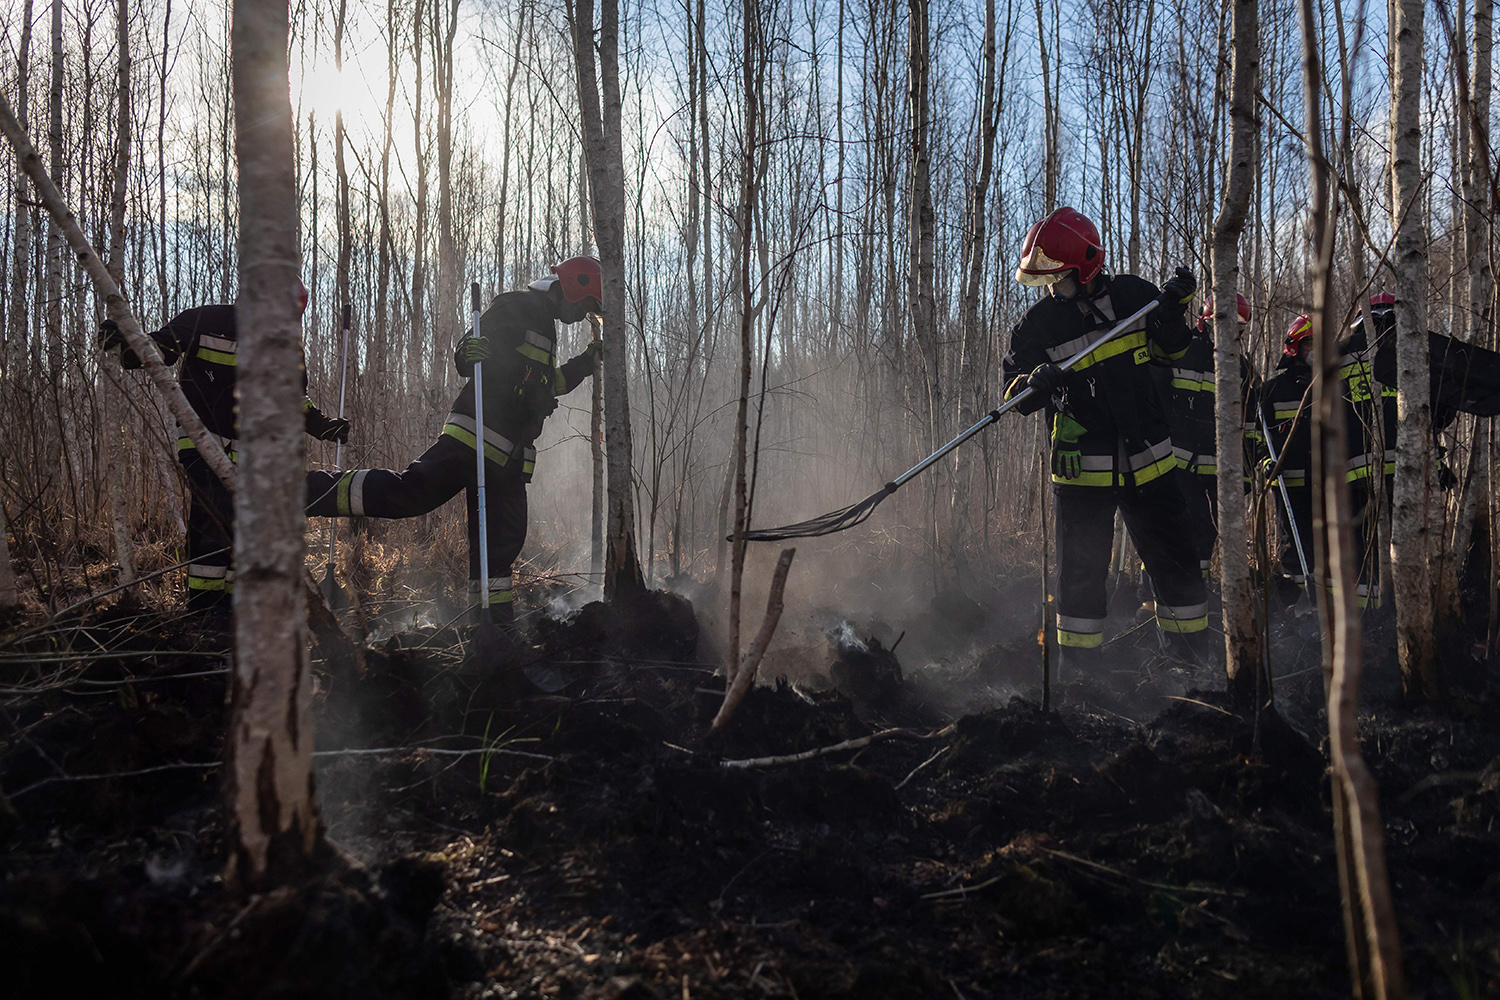 Polish firefighters extinguish a bushfire in Biebrza National Park on April 23. Massive wildfires have ravaged Poland's largest nature reserve as the country faces its worst drought in years.  WOJTEK RADWANSKI/AFP via Getty Images